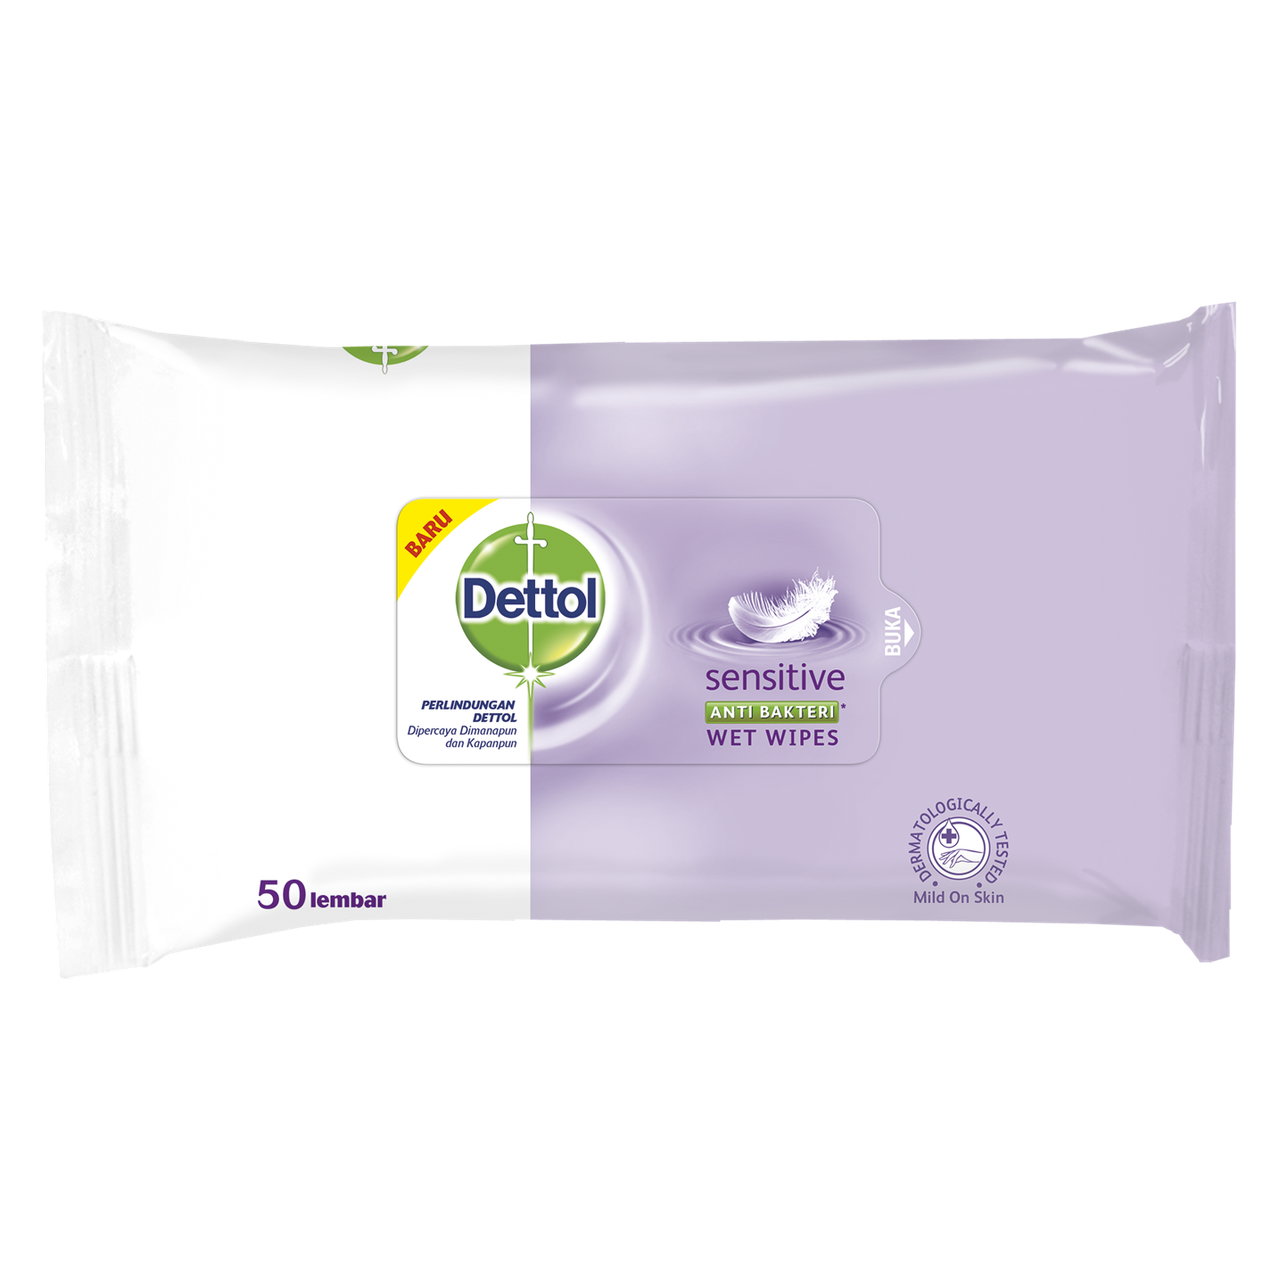 Dettol Anti Bacterial Wet Wipes Original